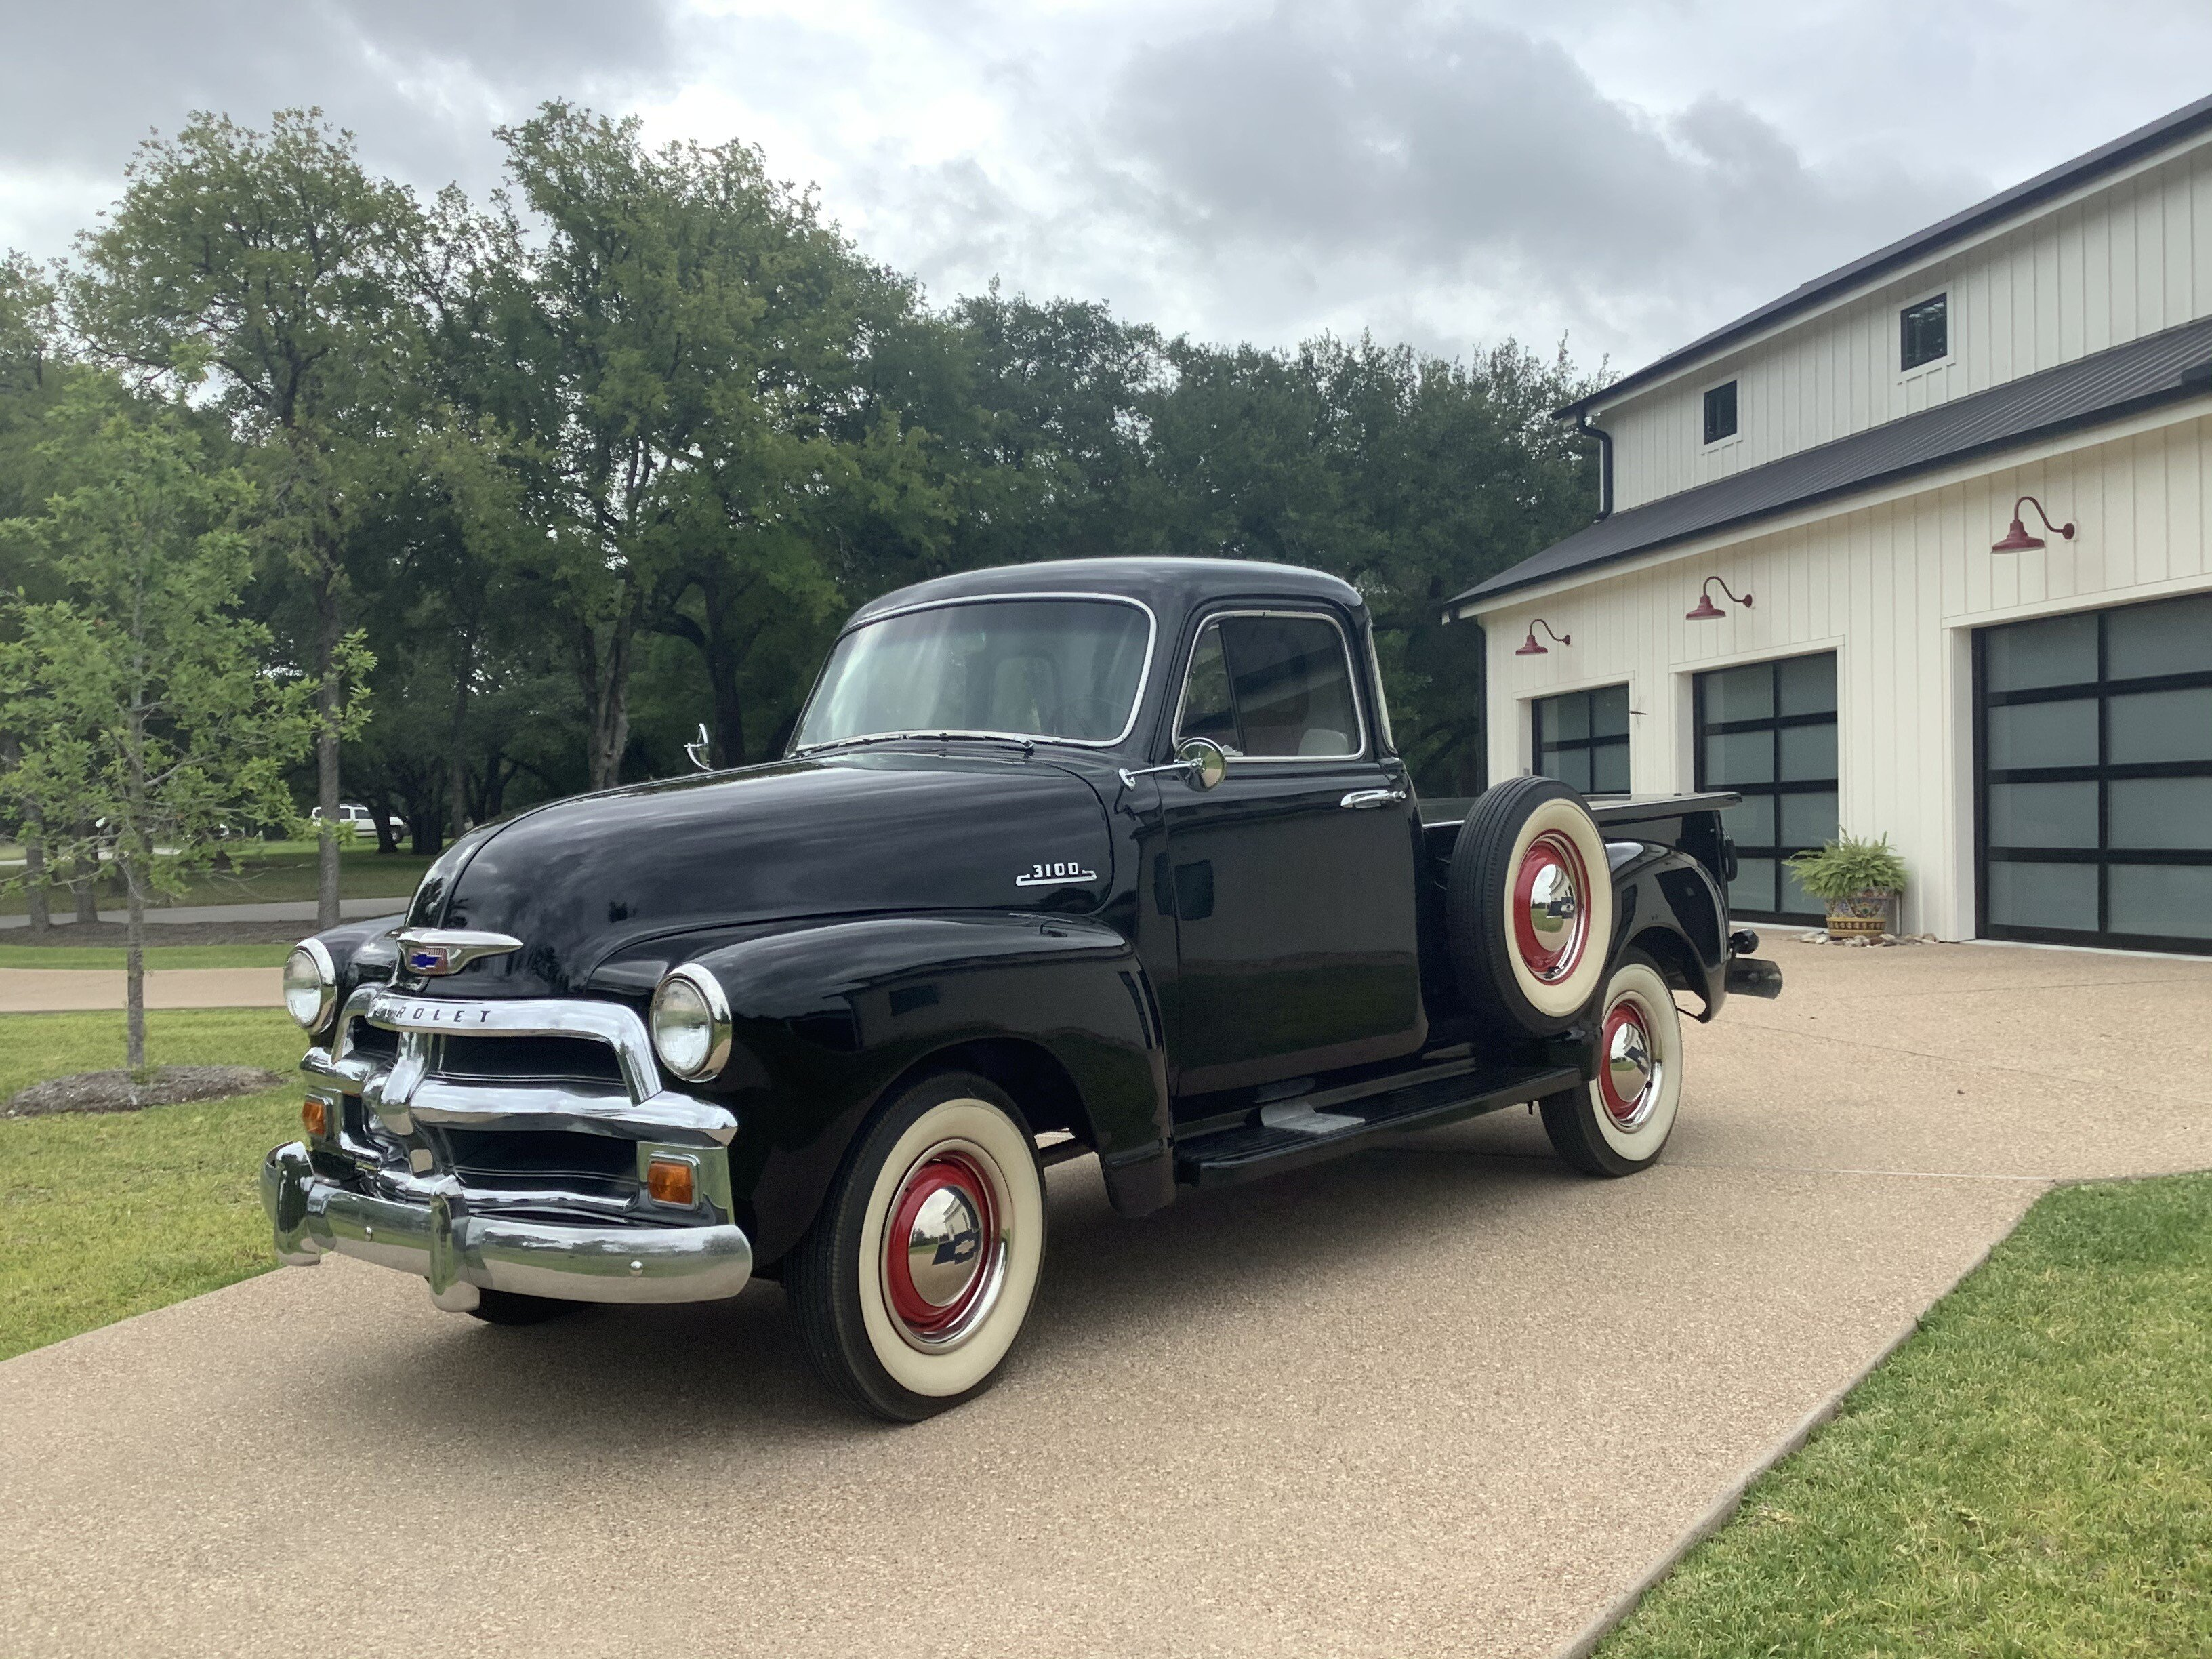 1954 Chevrolet 3100 For Sale Near Salado Texas 76571 Classics On Autotrader